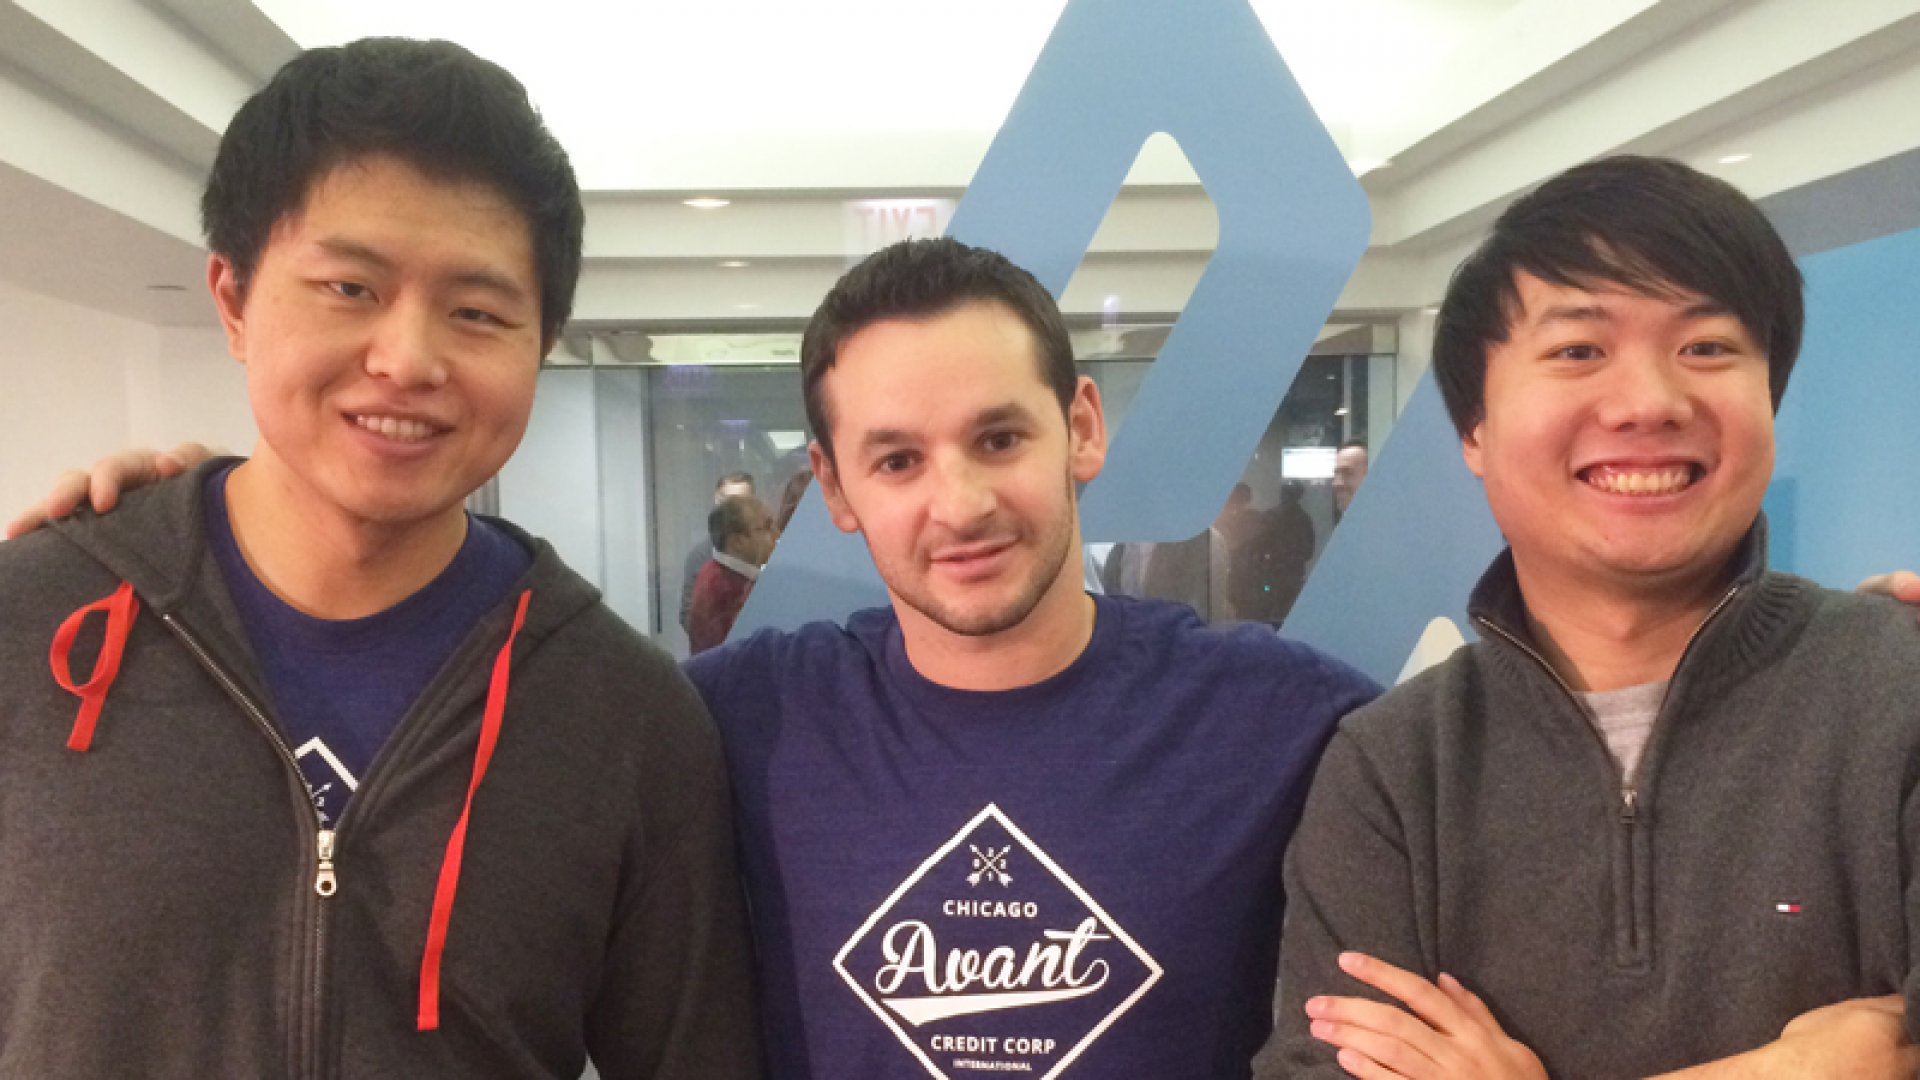 John Sun, Al Goldstein, and Paul Zhang are the co-founders of Avant.